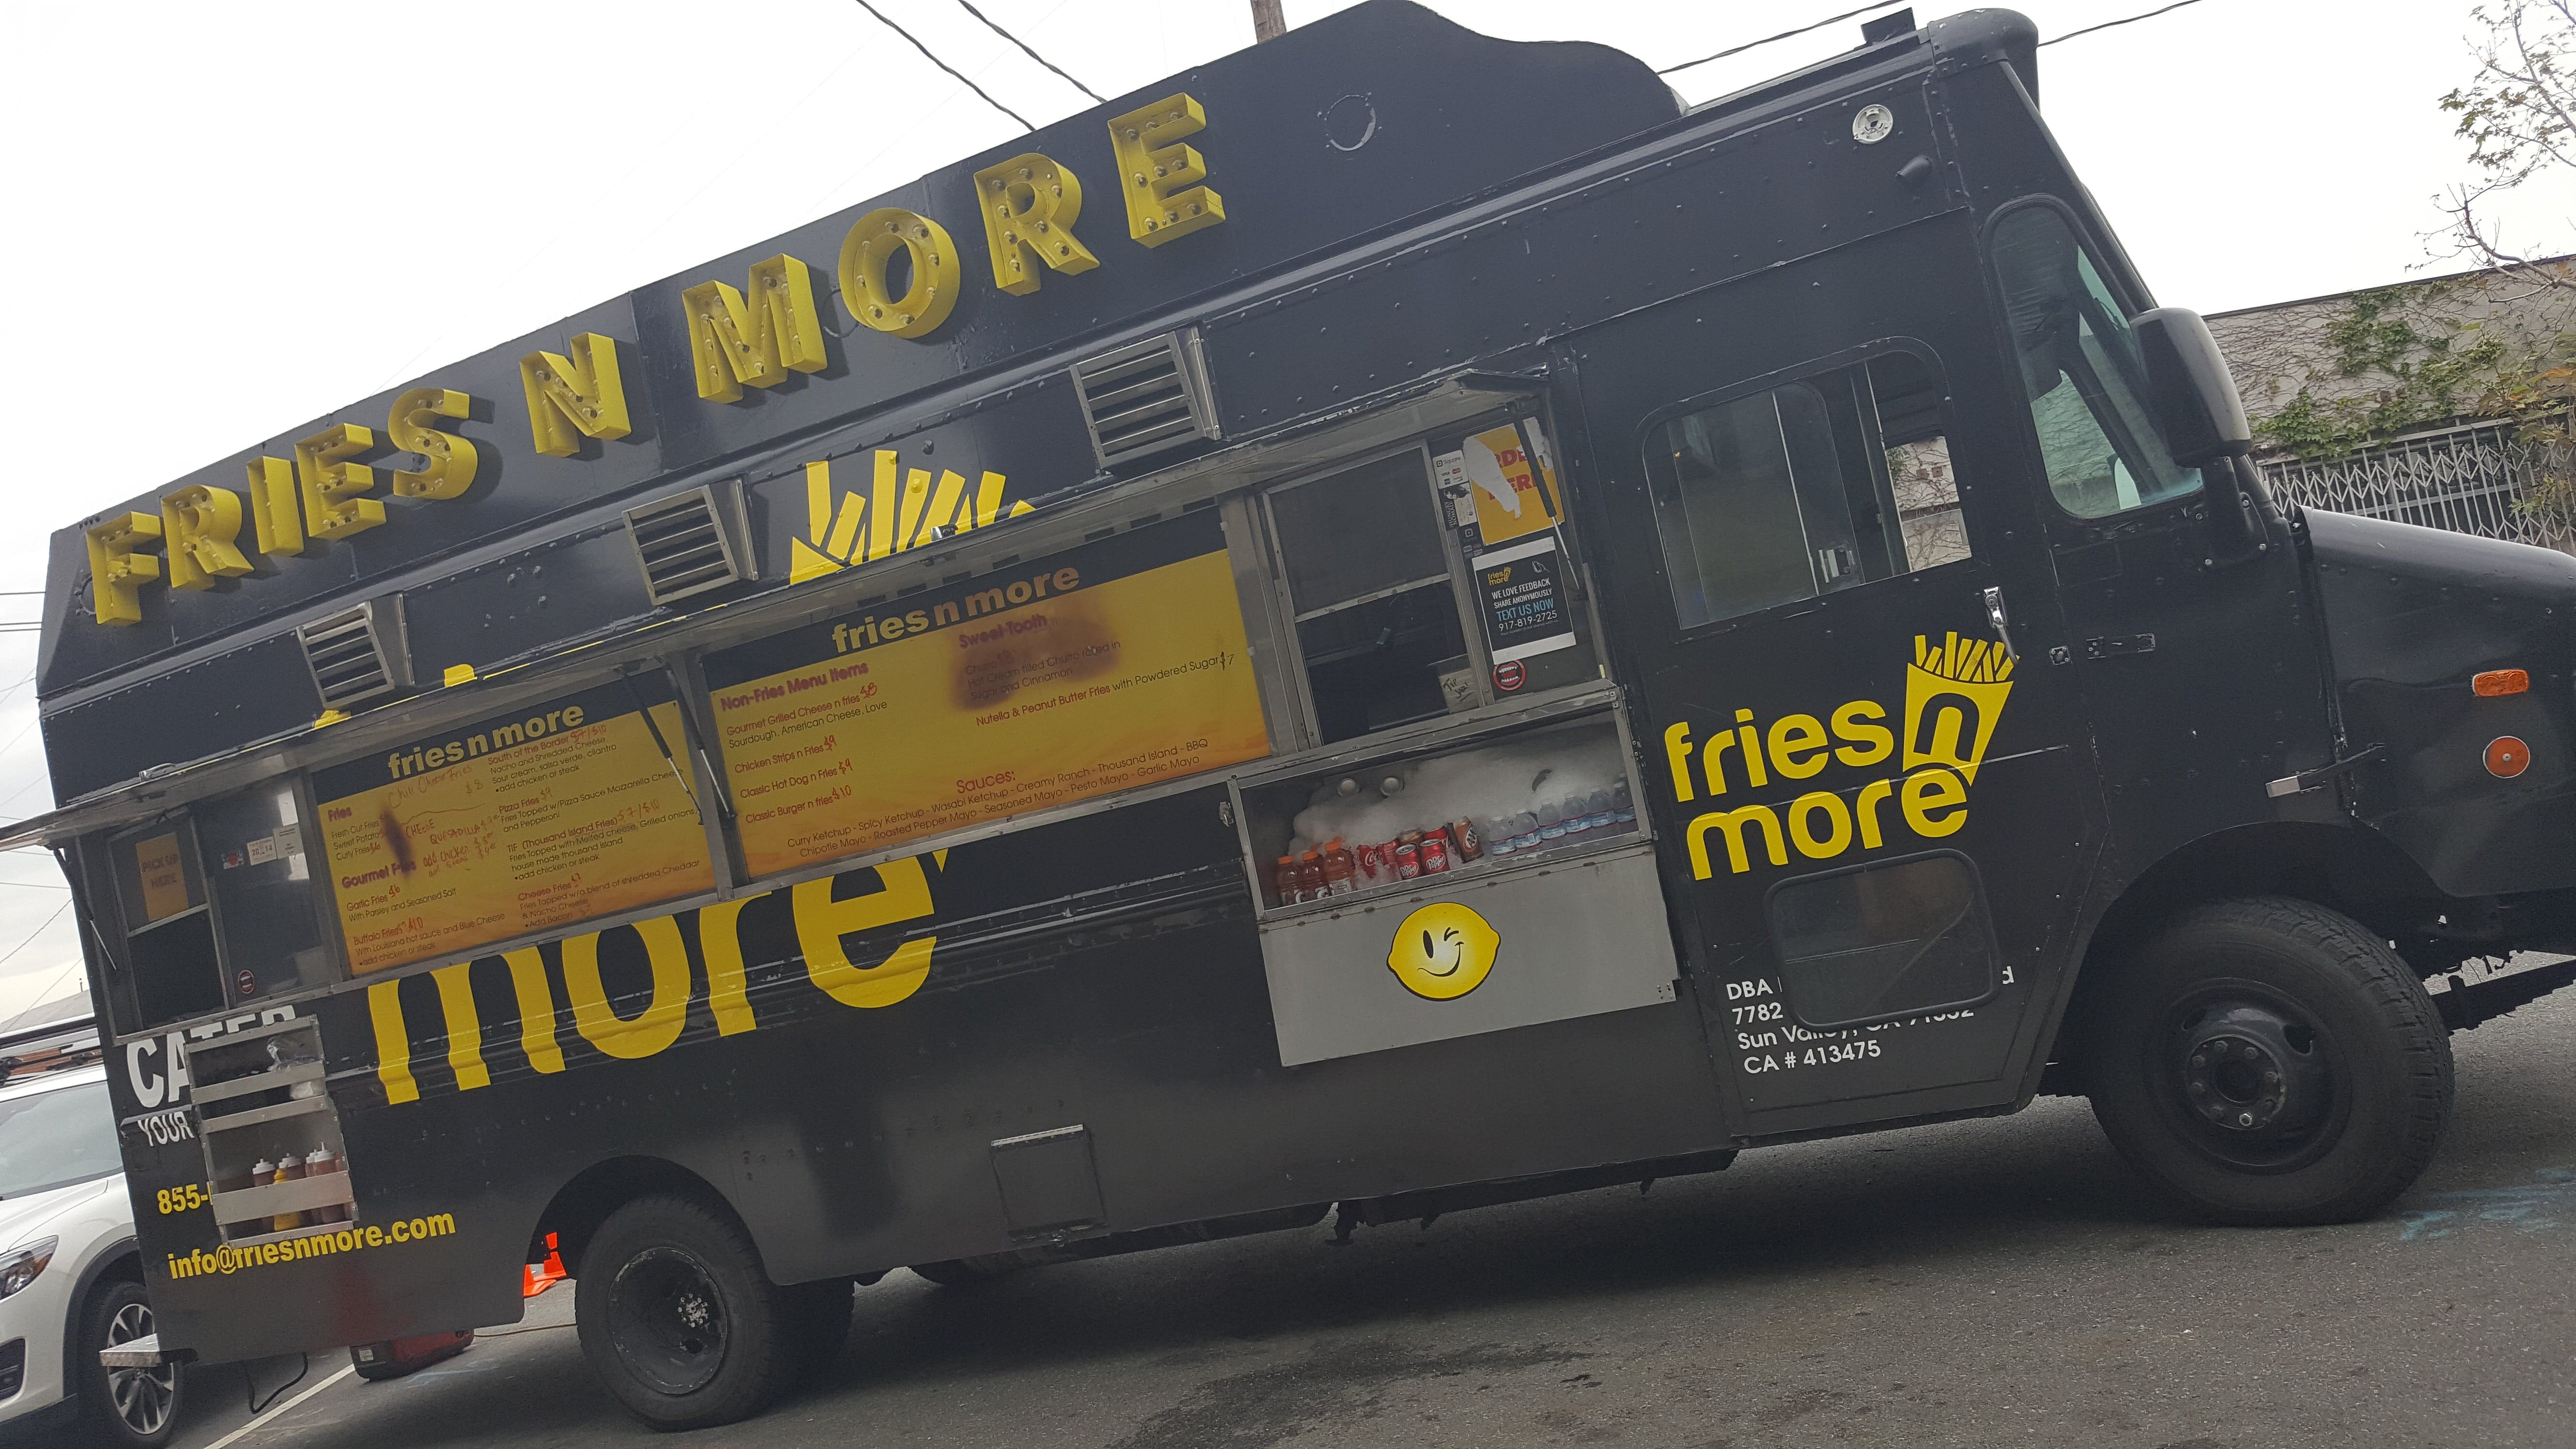 Friesnmore is the street food truck in la when it comes to